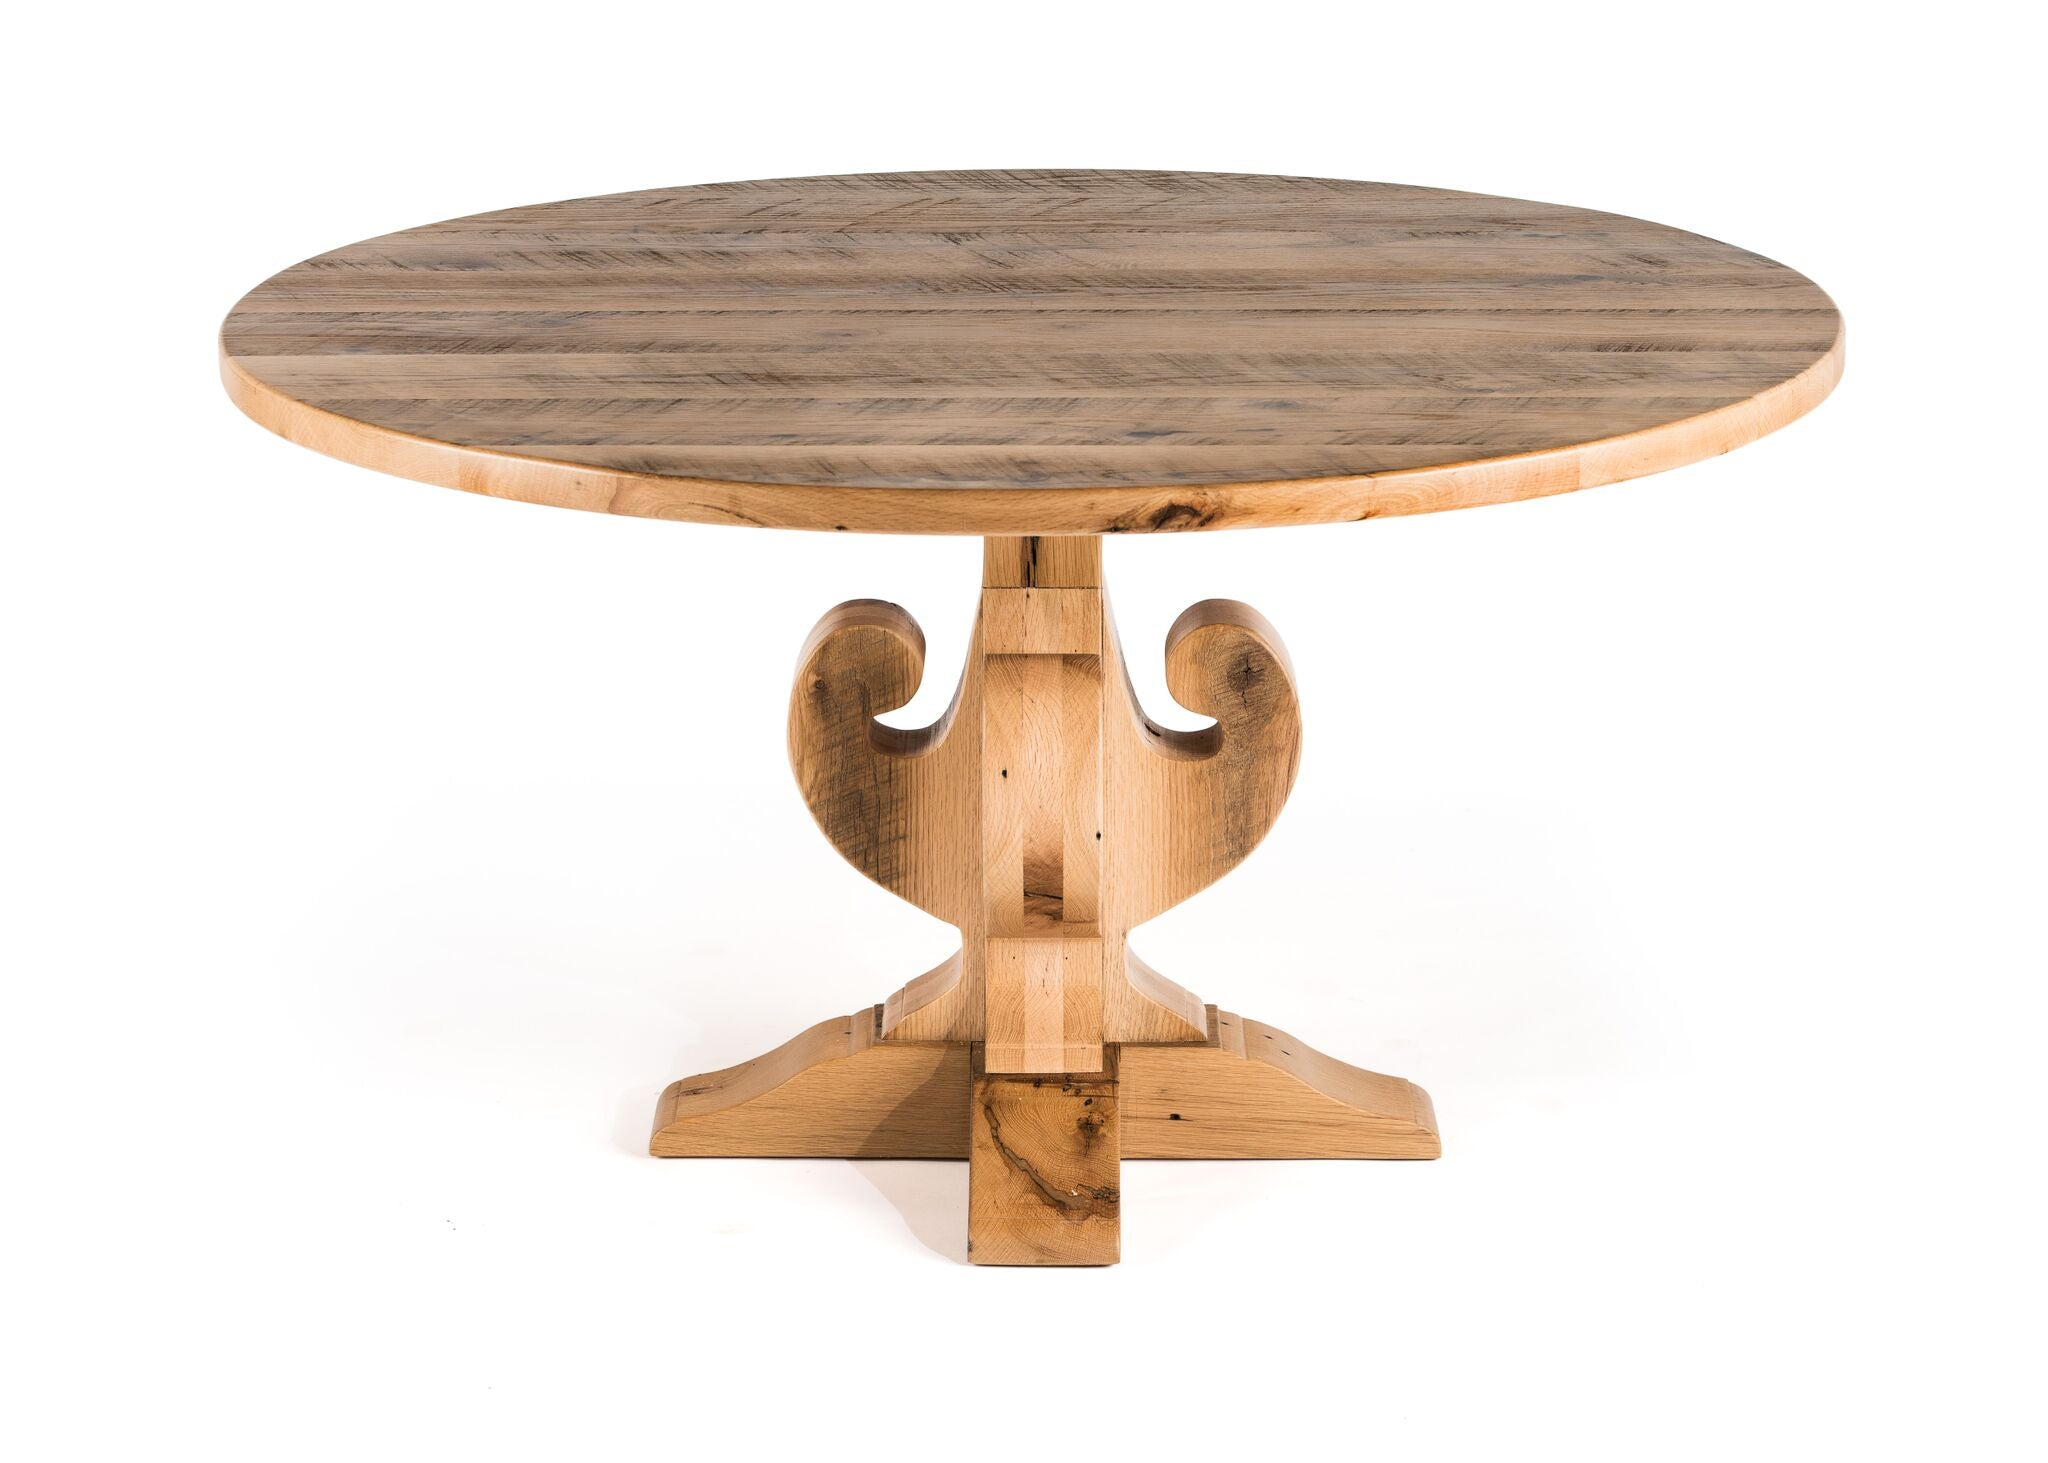 "Round Wood Tables | Farifield Trestle Table | Natural Ash | Natural Ash | Diameter 42 |  Height 30 | 1.5"" Standard 